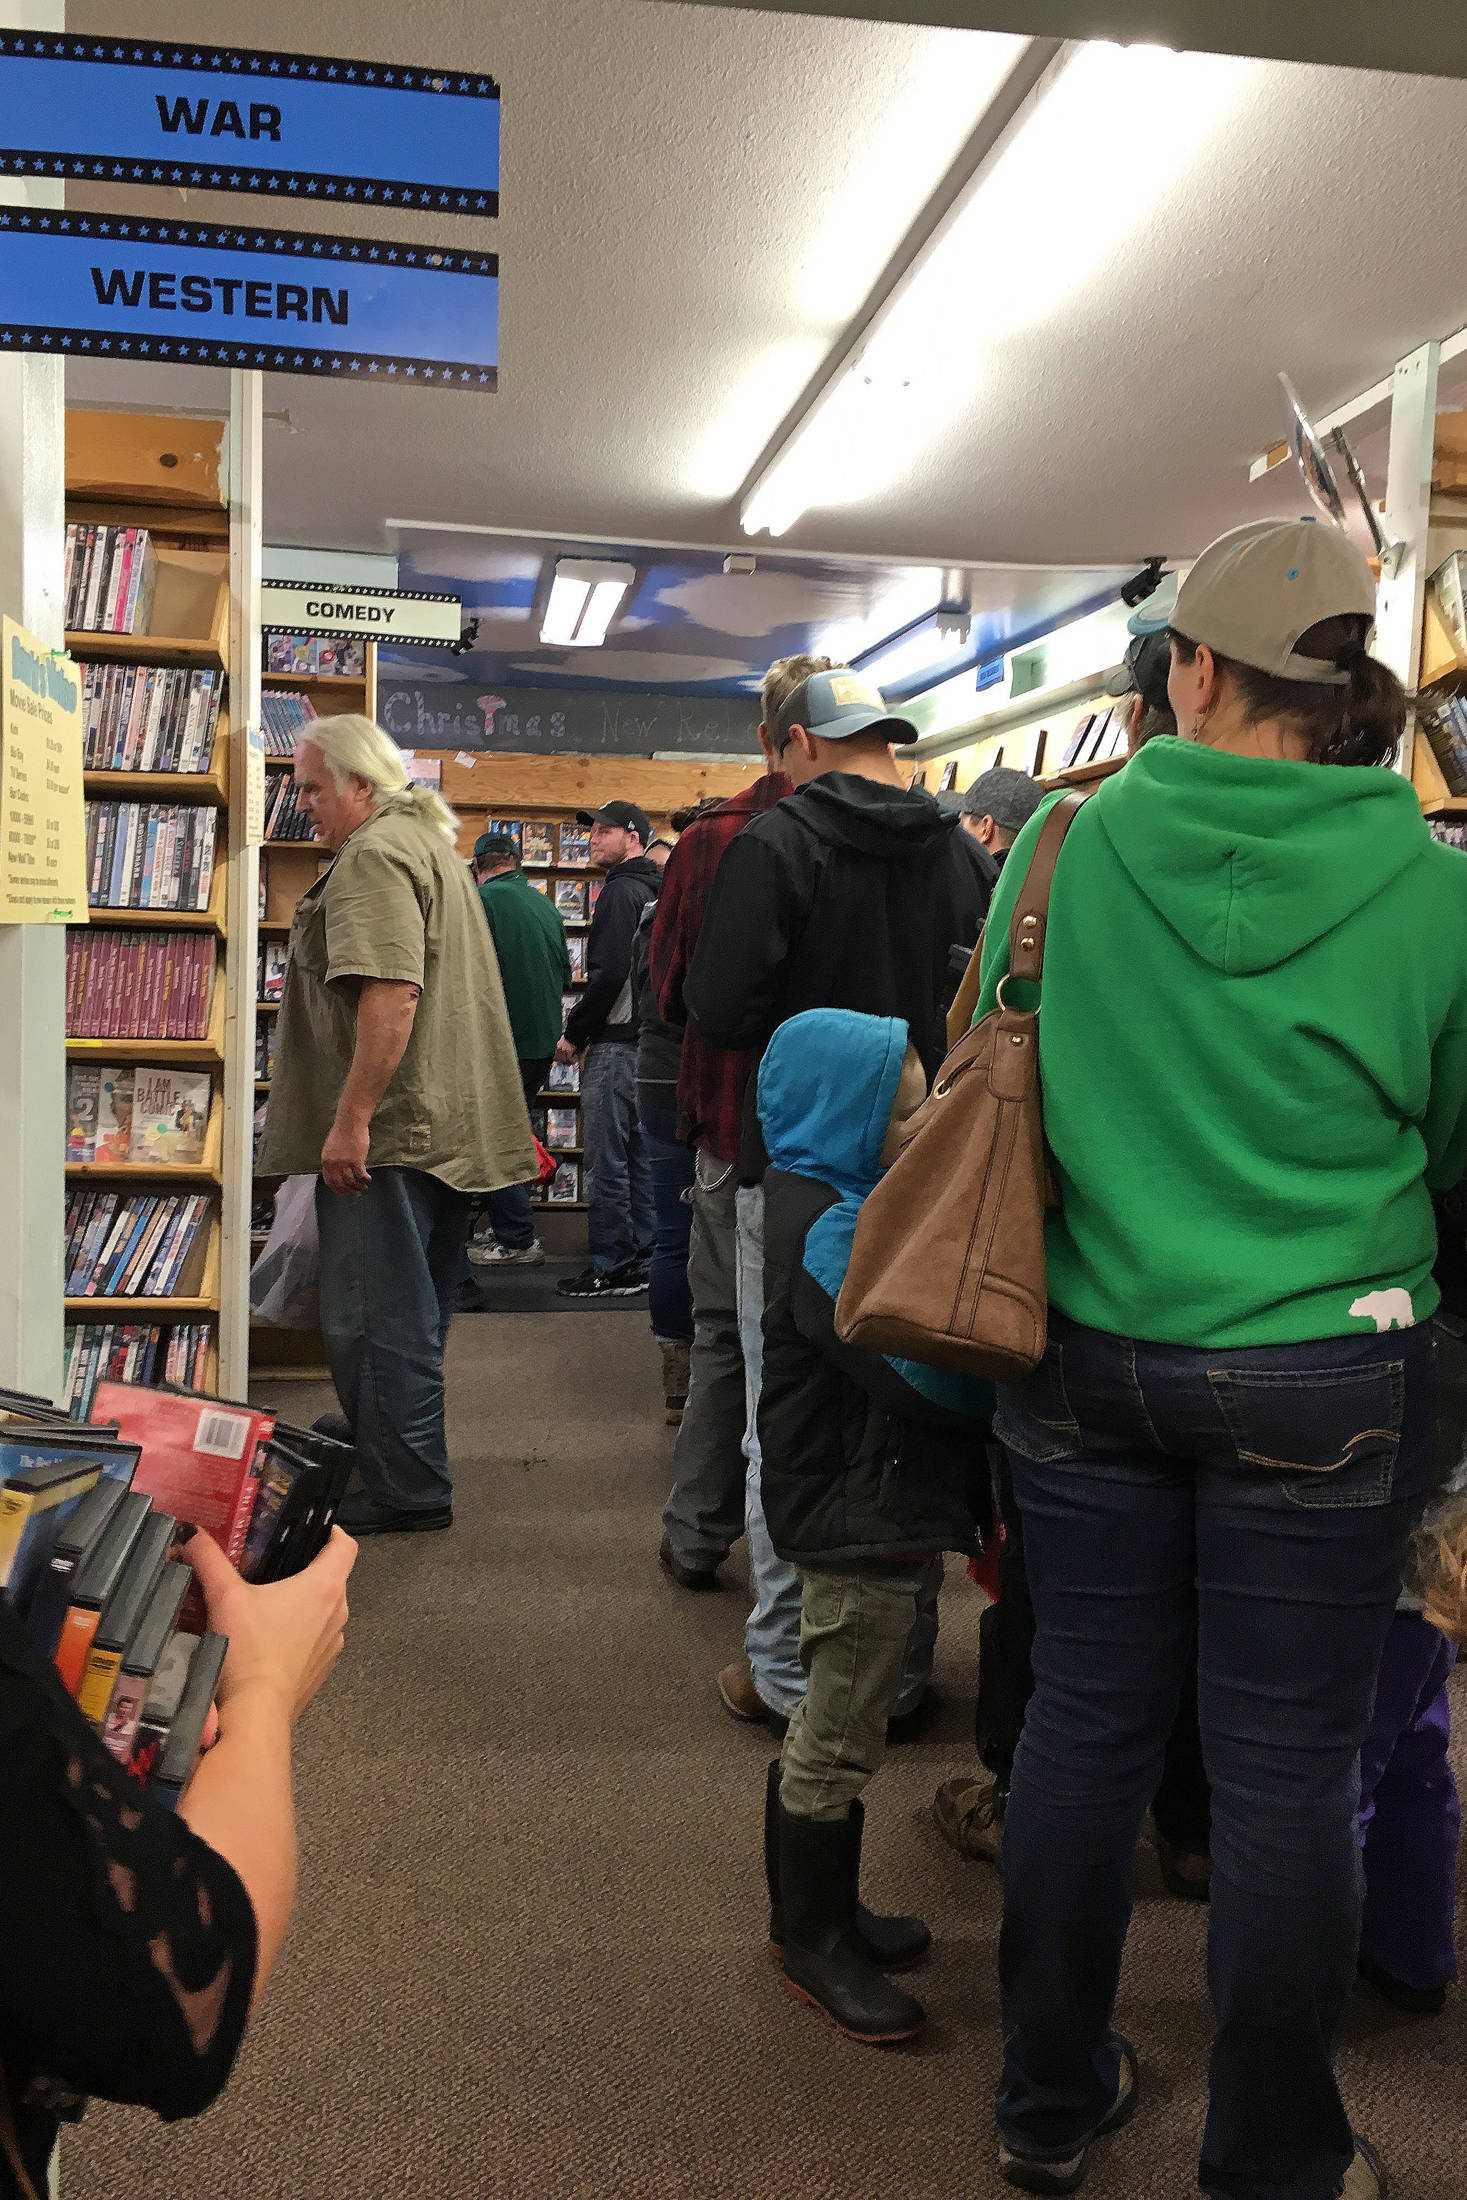 Customers form a line stretching from the register to the back of Barb's Video and DVD on Saturday, Oct. 20, 2018 in Homer, Alaska during the movie rental store's first day of its merchandise sale. (Photo by Megan Pacer/Homer News)